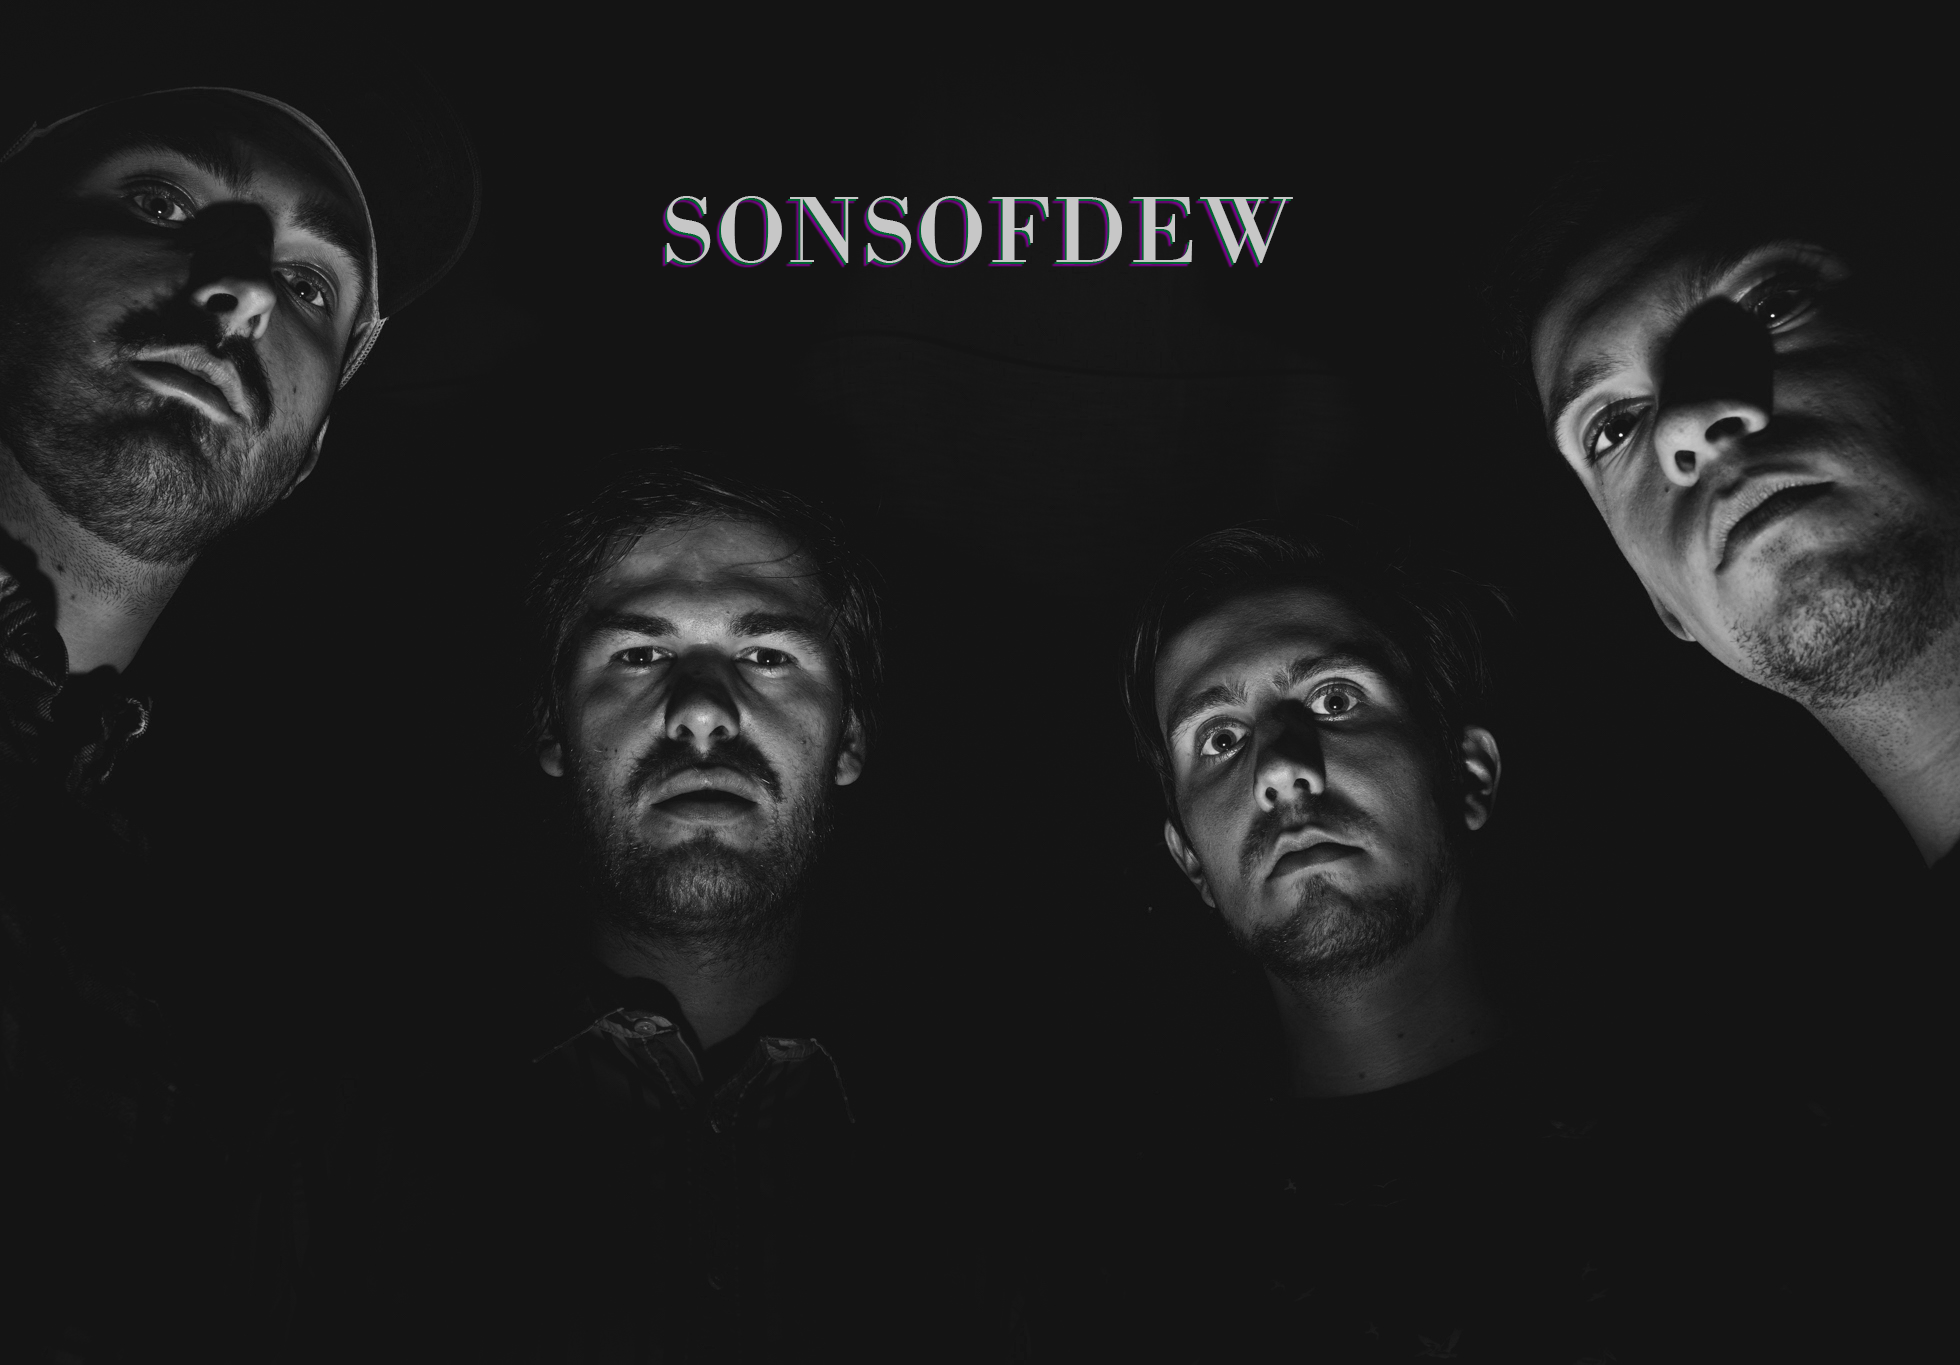 Sons Of Dew